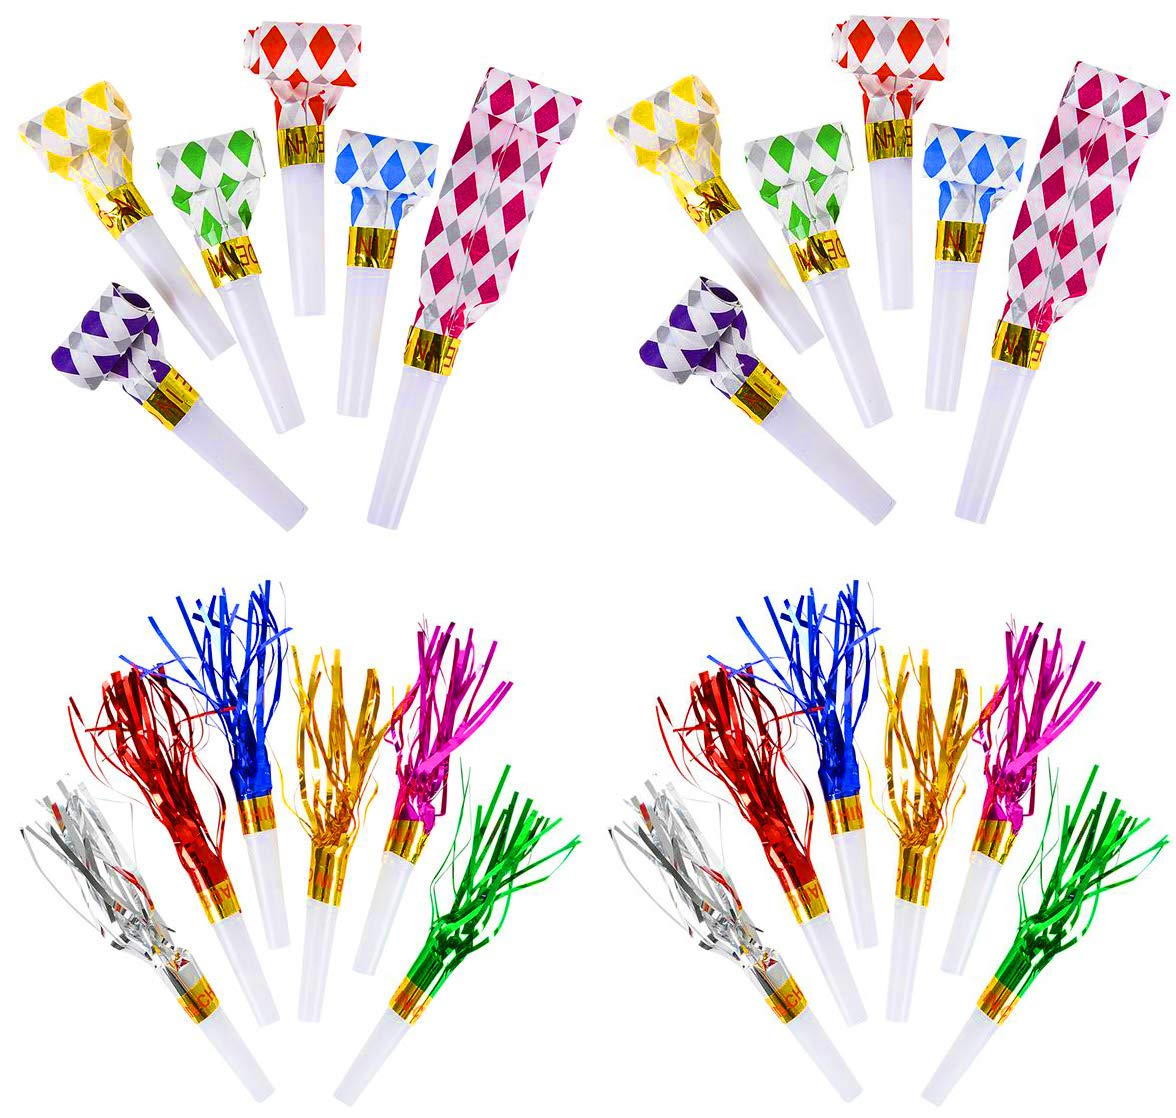 Blowout Noisemakers And Fringed Noisemakers Toys Bulk Pack of 288, New Years Party Noisemaker, Musical Whistles, Assorted Colors, 144 Fringed Party Horns 7'', 144 BlowOuts 11'' Party Favors, By 4E's Novelty by 4E's Novelty